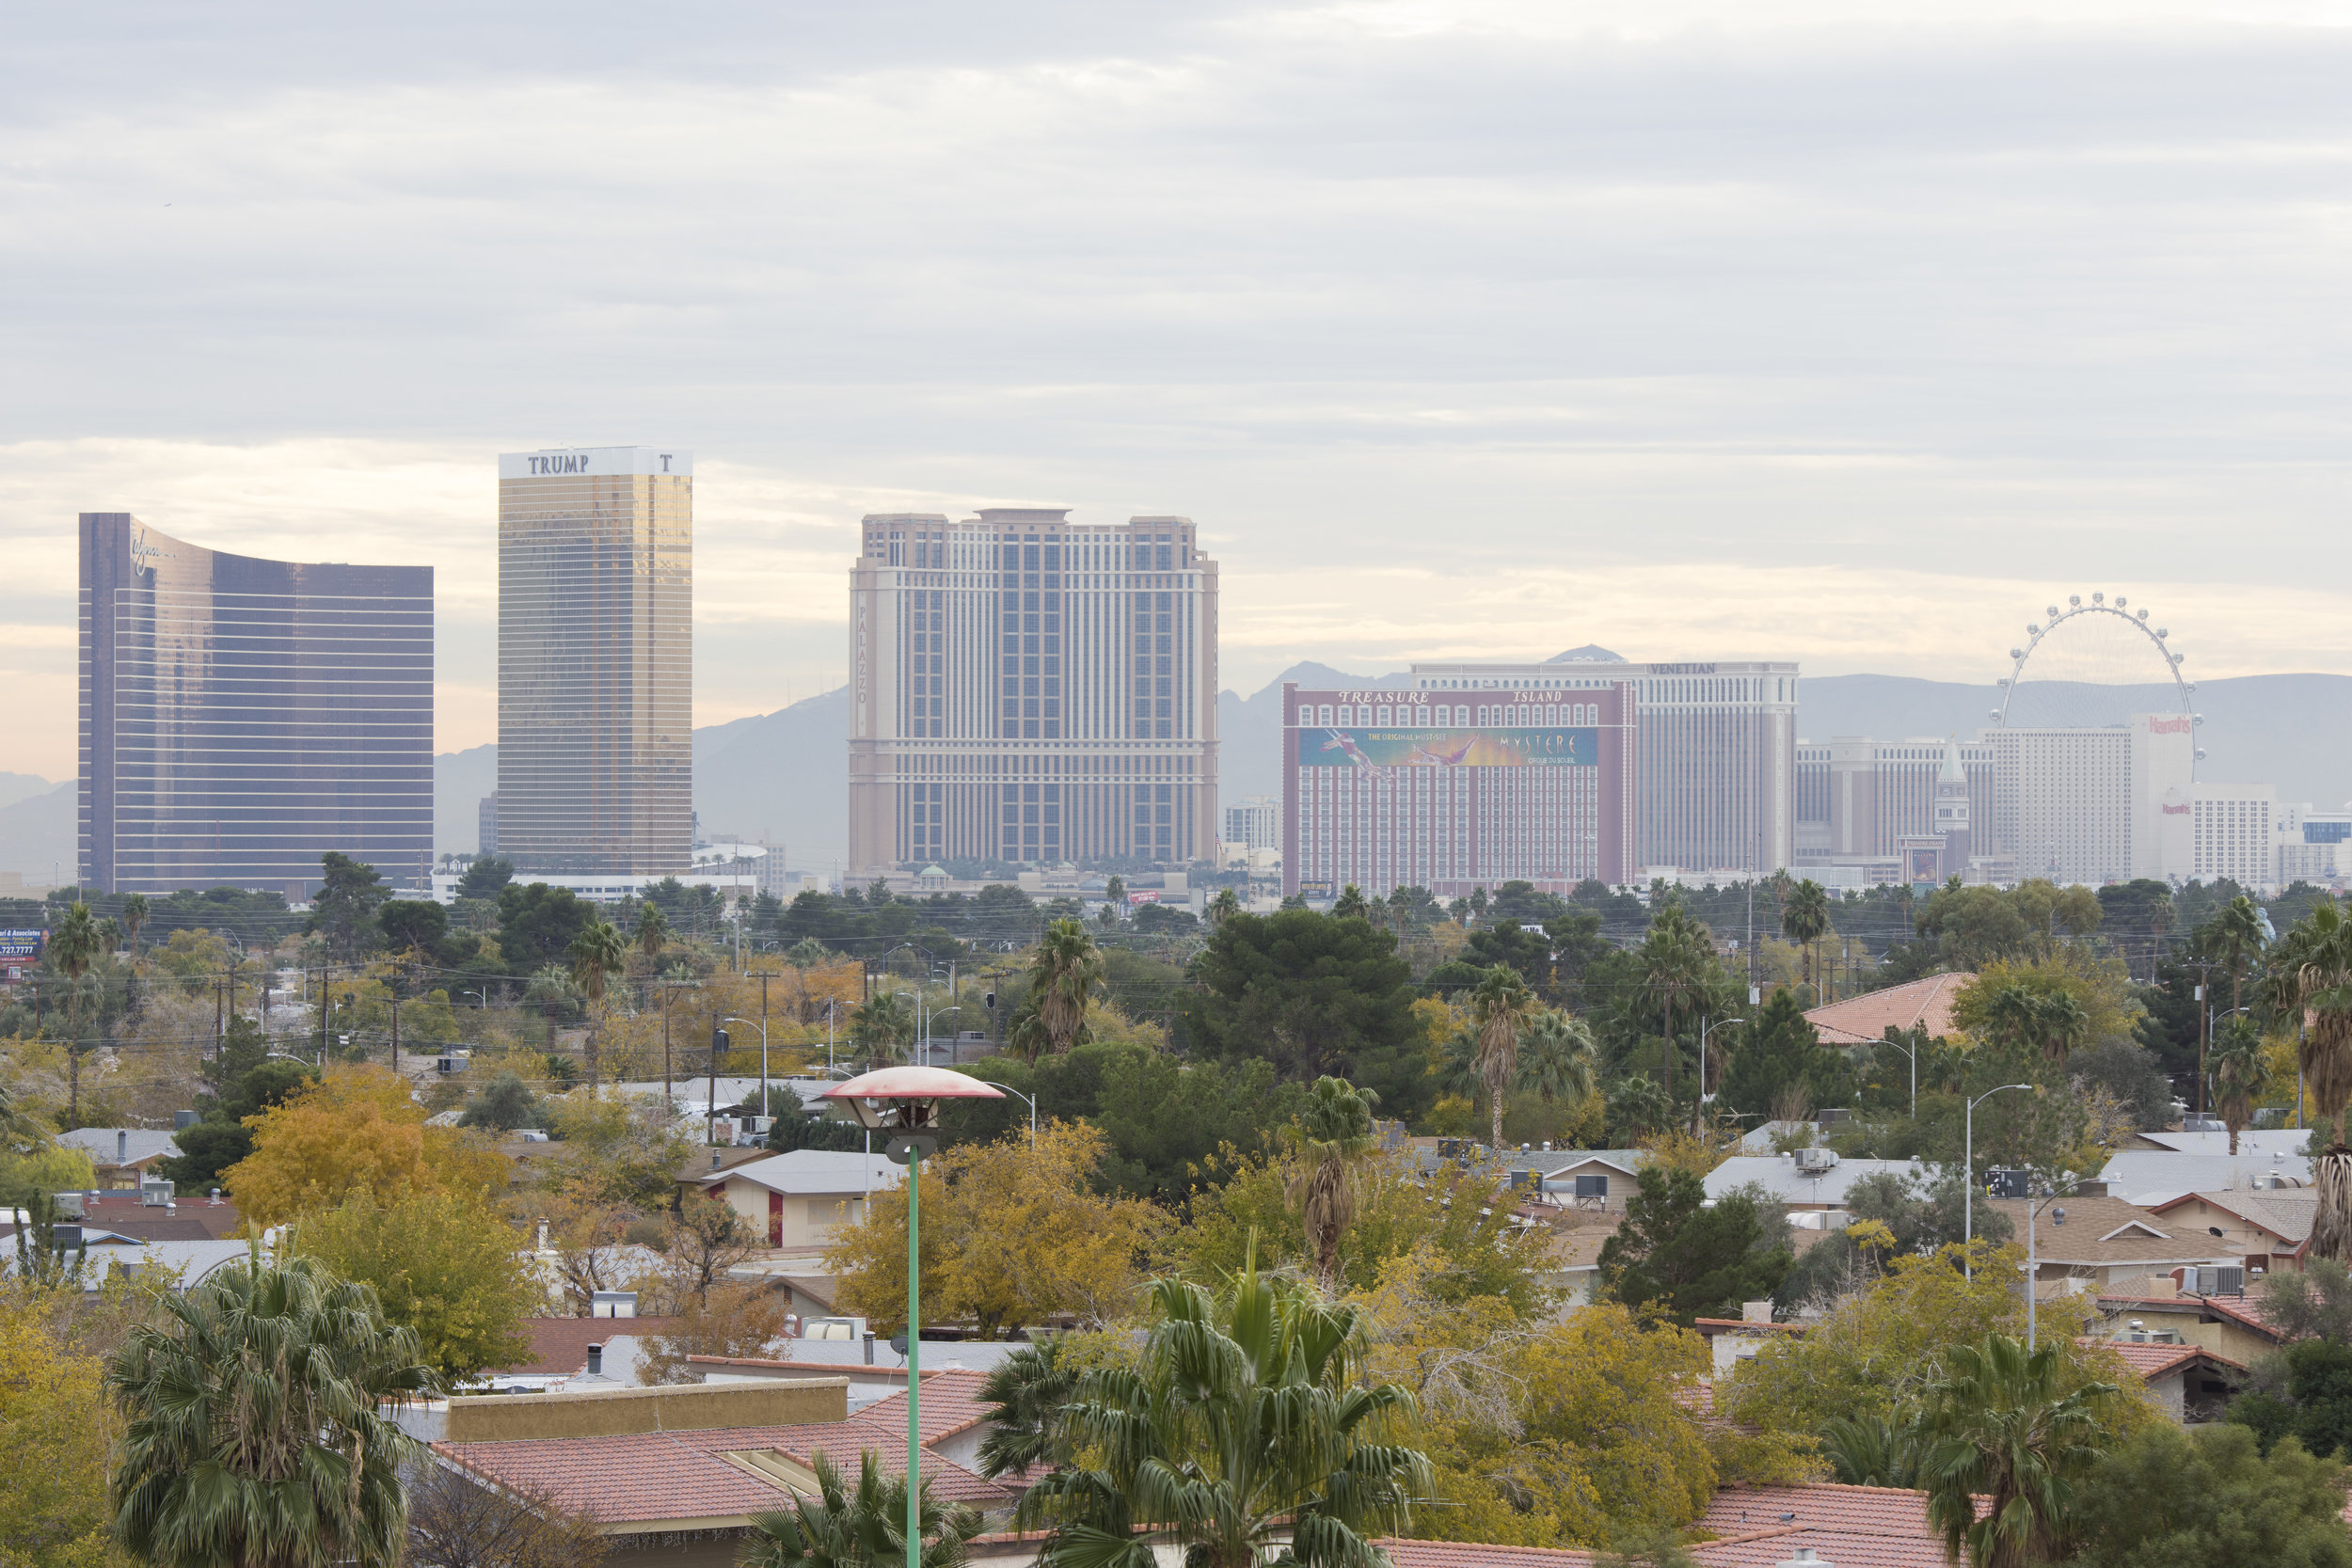 The Las Vegas Strip is seen in the distance.